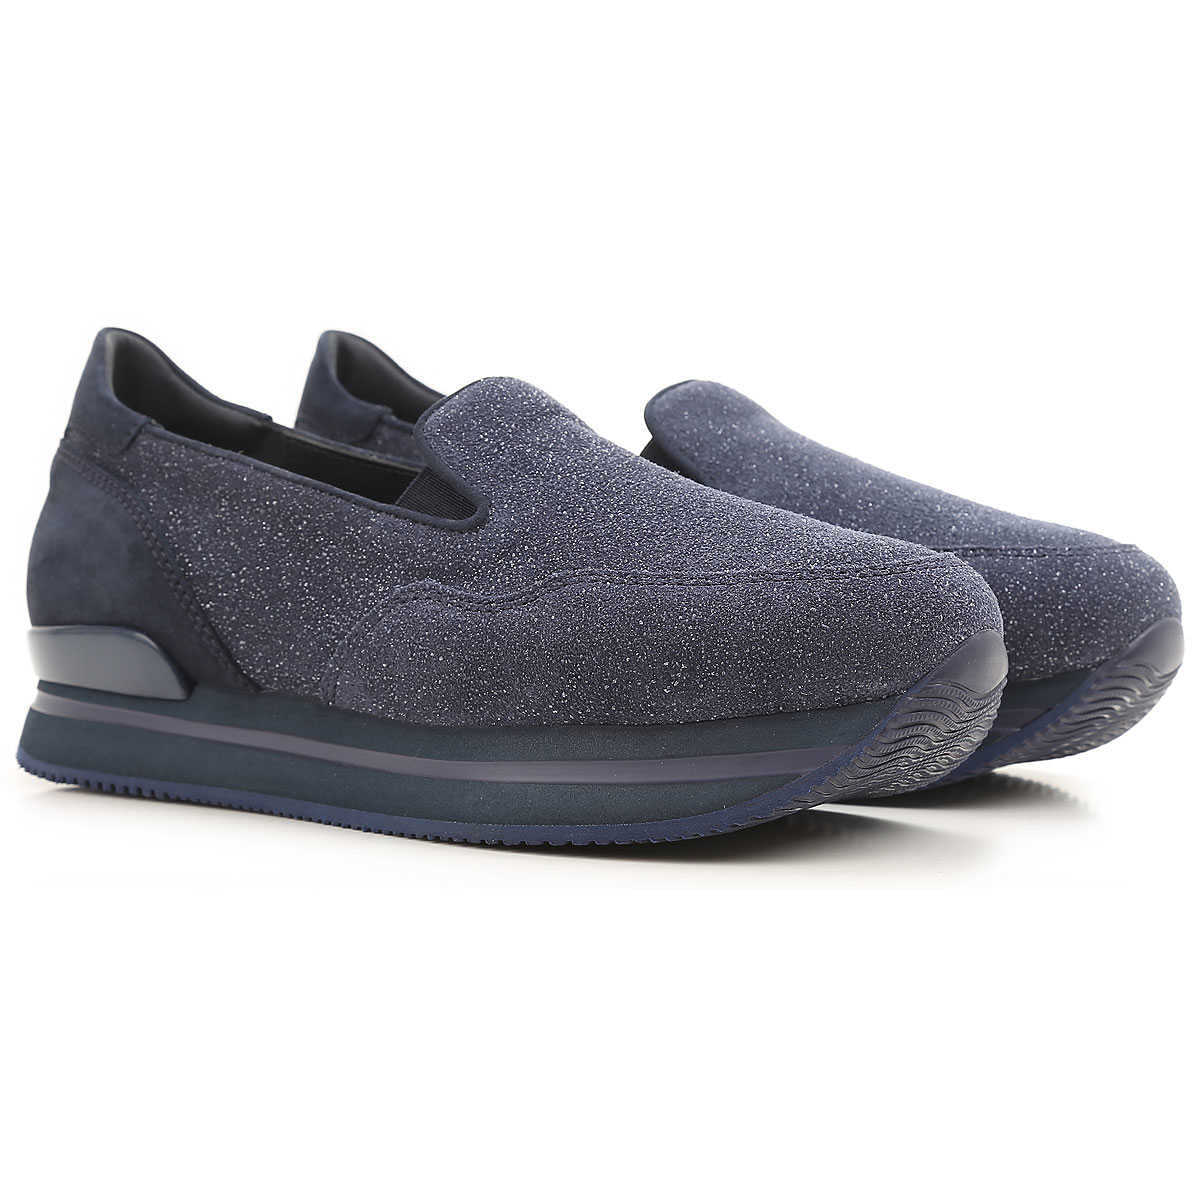 Hogan Slip on Sneakers for Women On Sale in Outlet Midnight Blue UK - GOOFASH